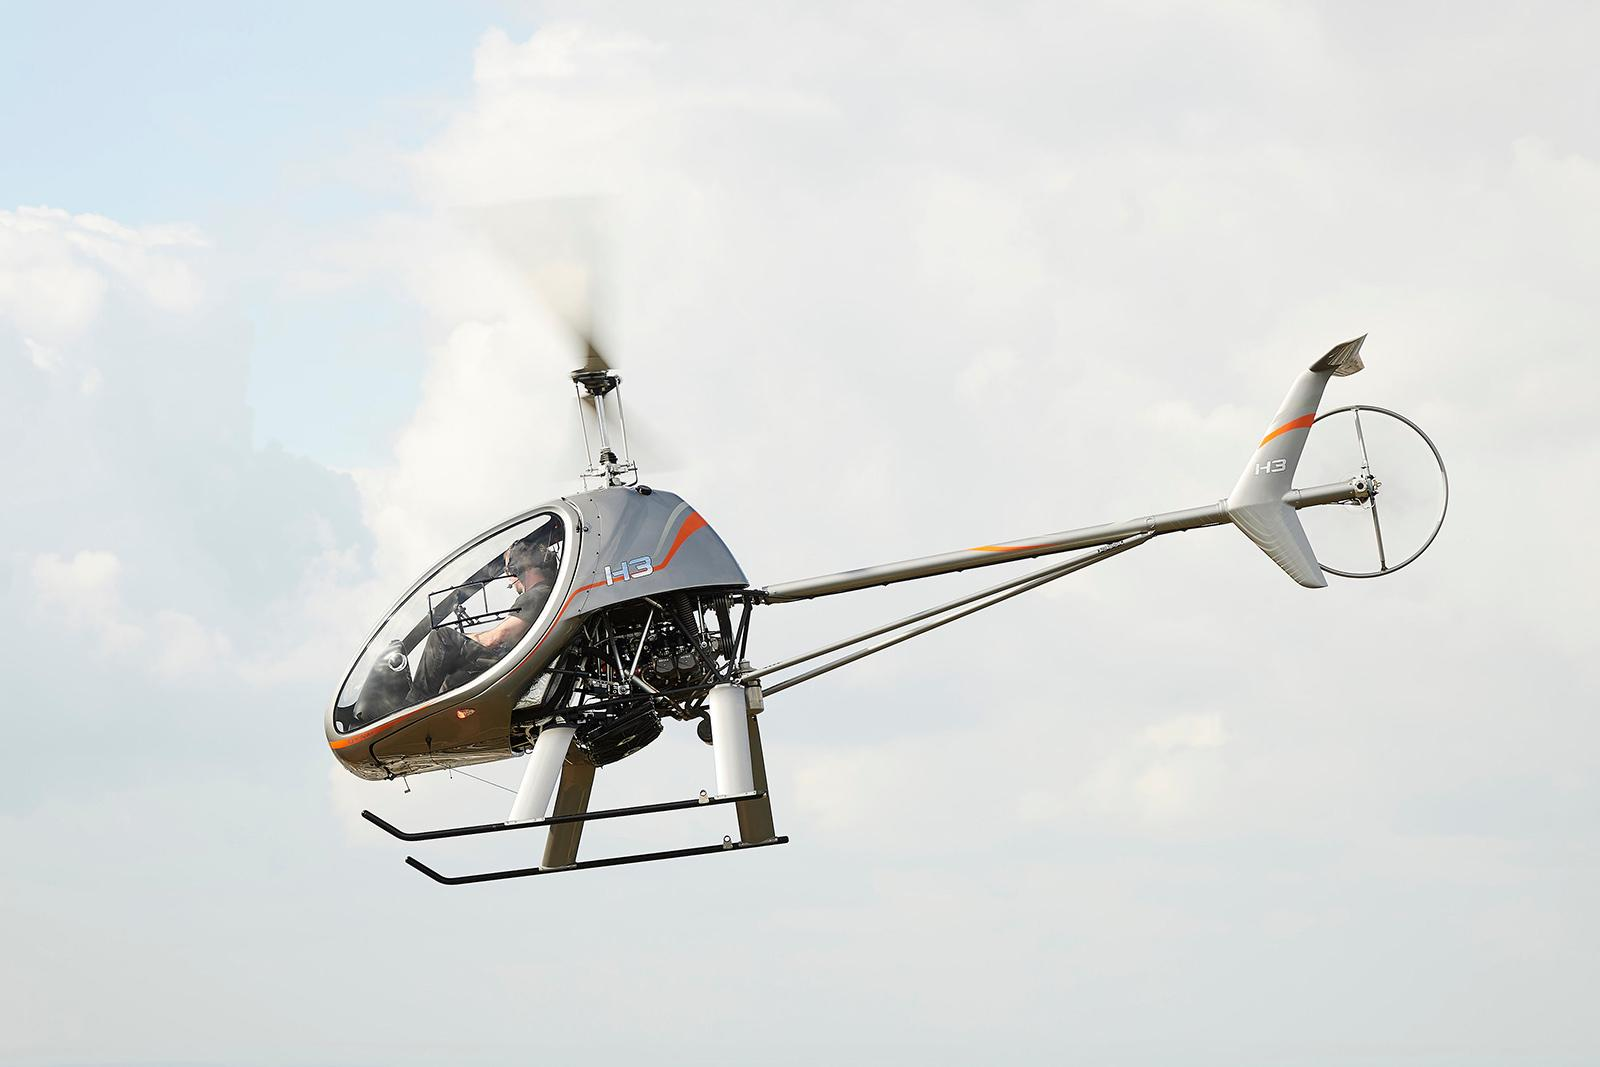 Dynali H3 helicopter